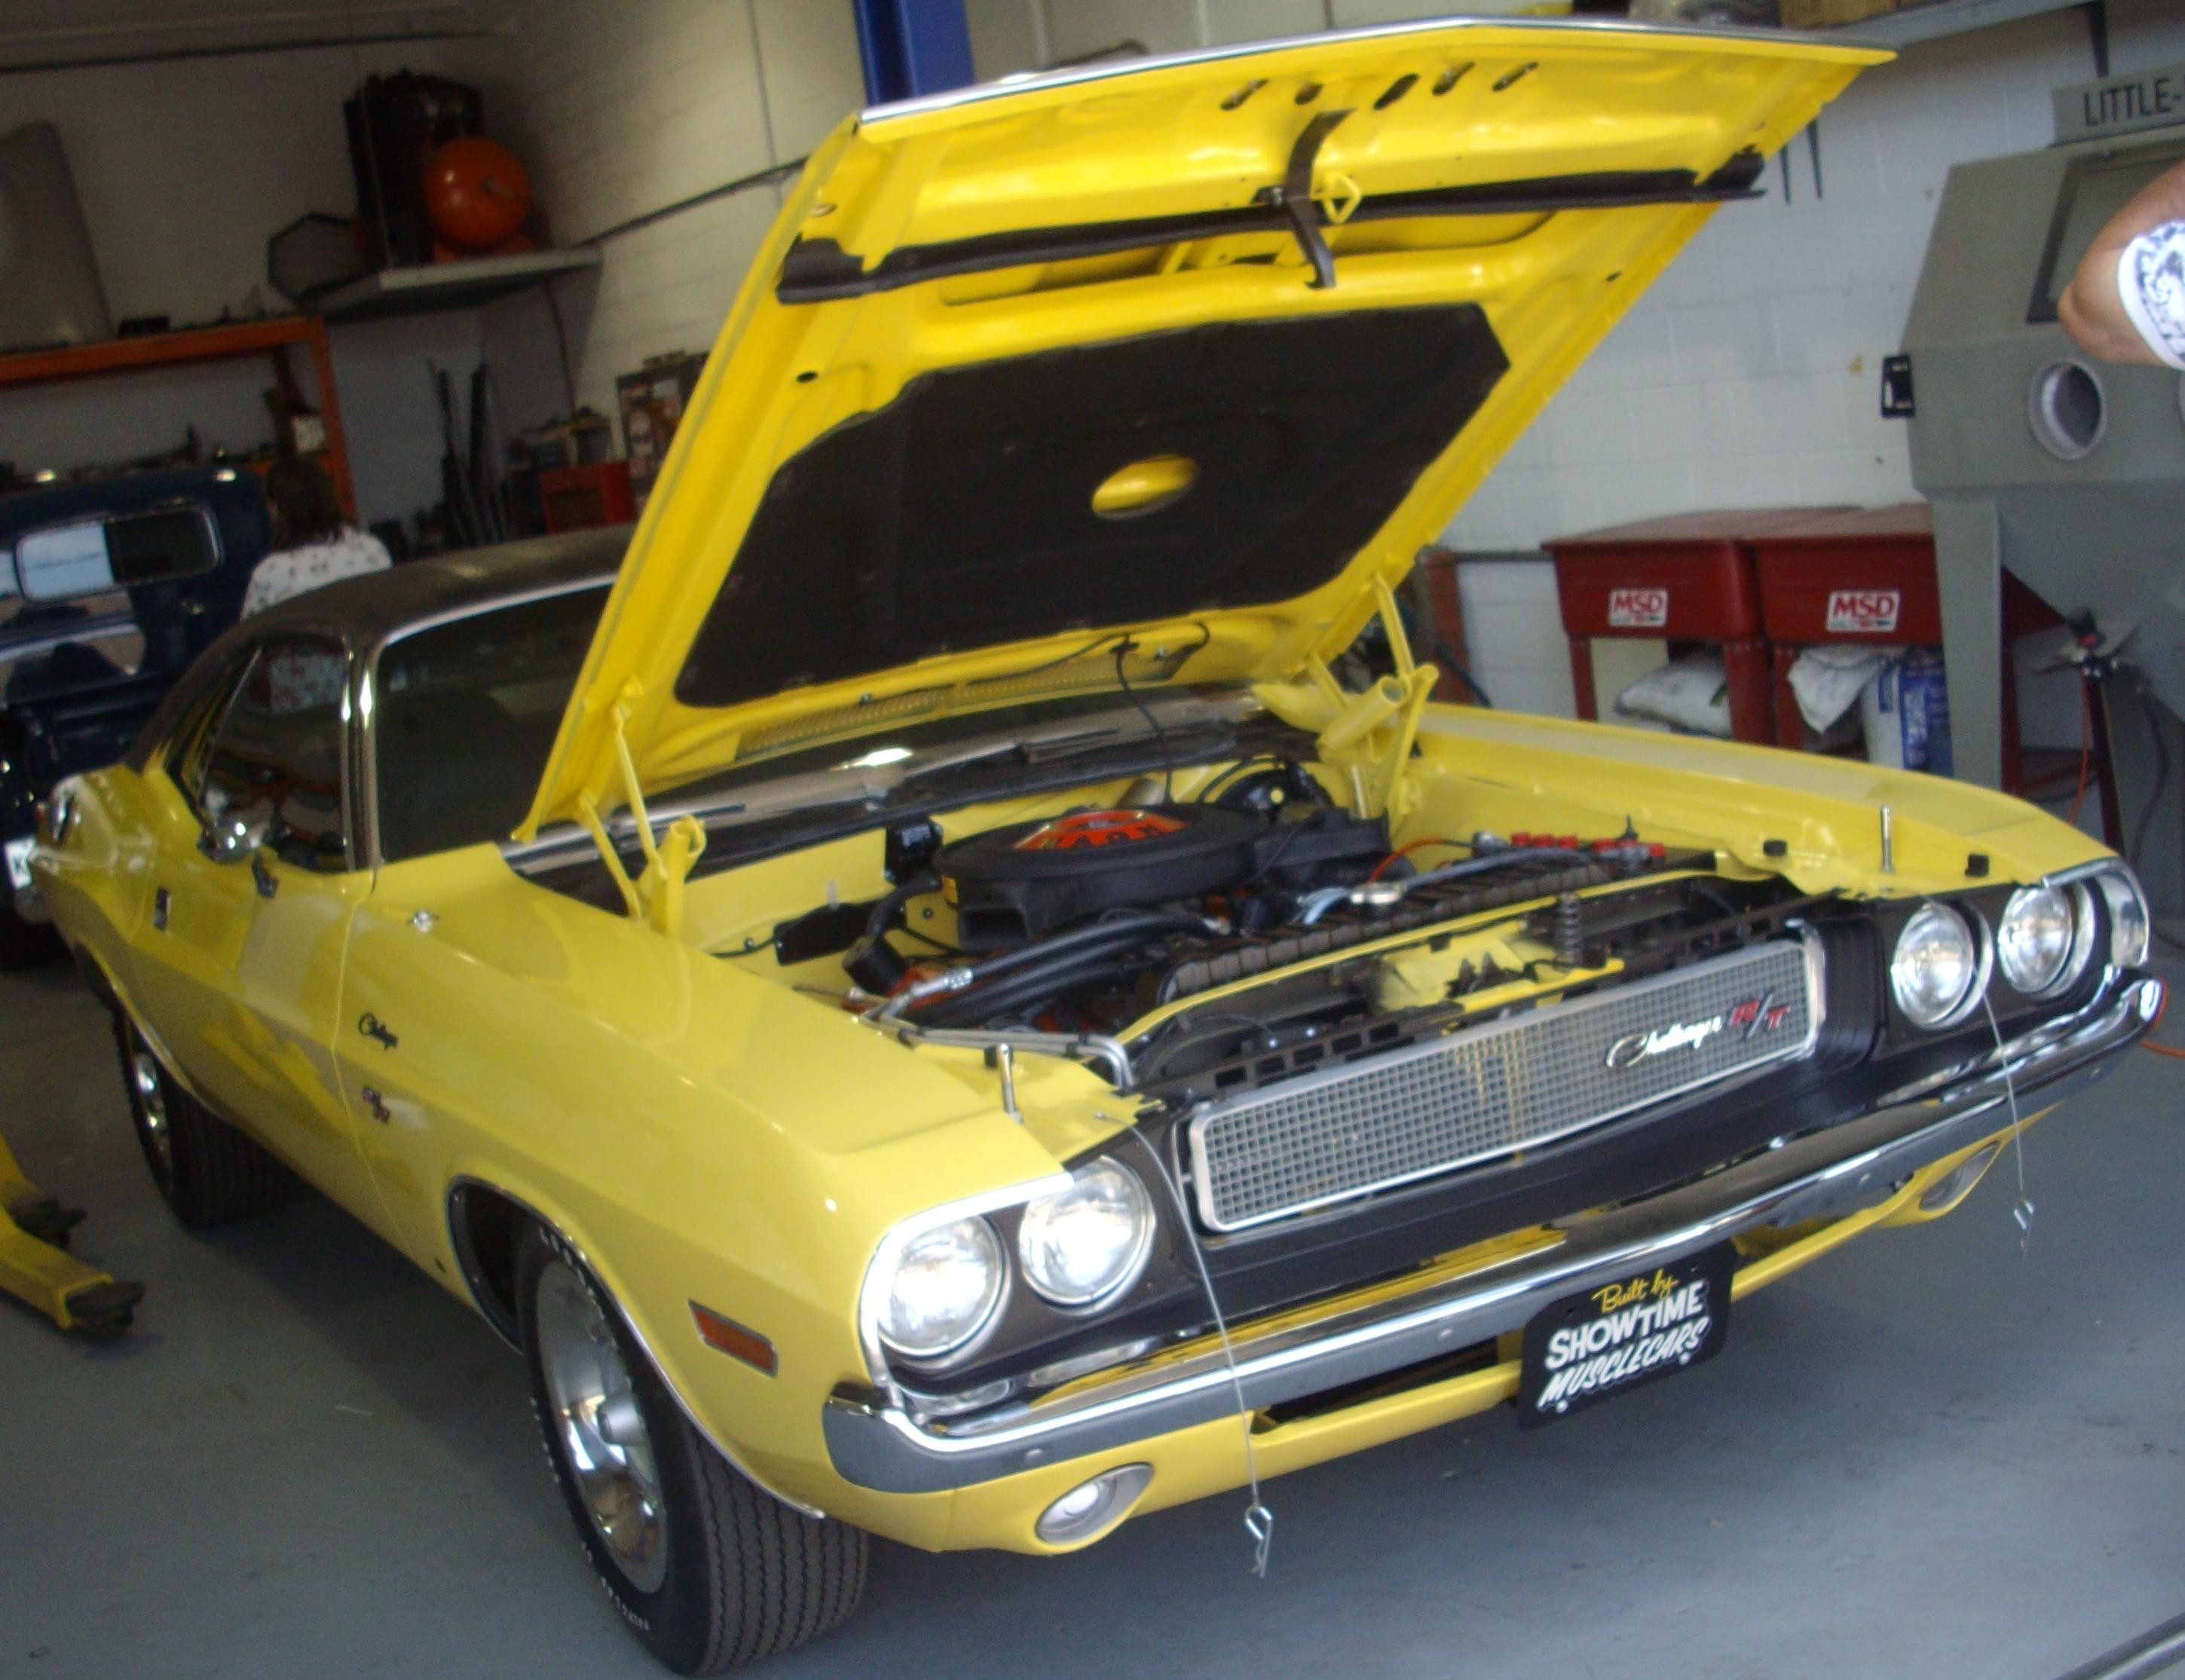 file:'70 dodge challenger (auto classique showtime muscle cars '12